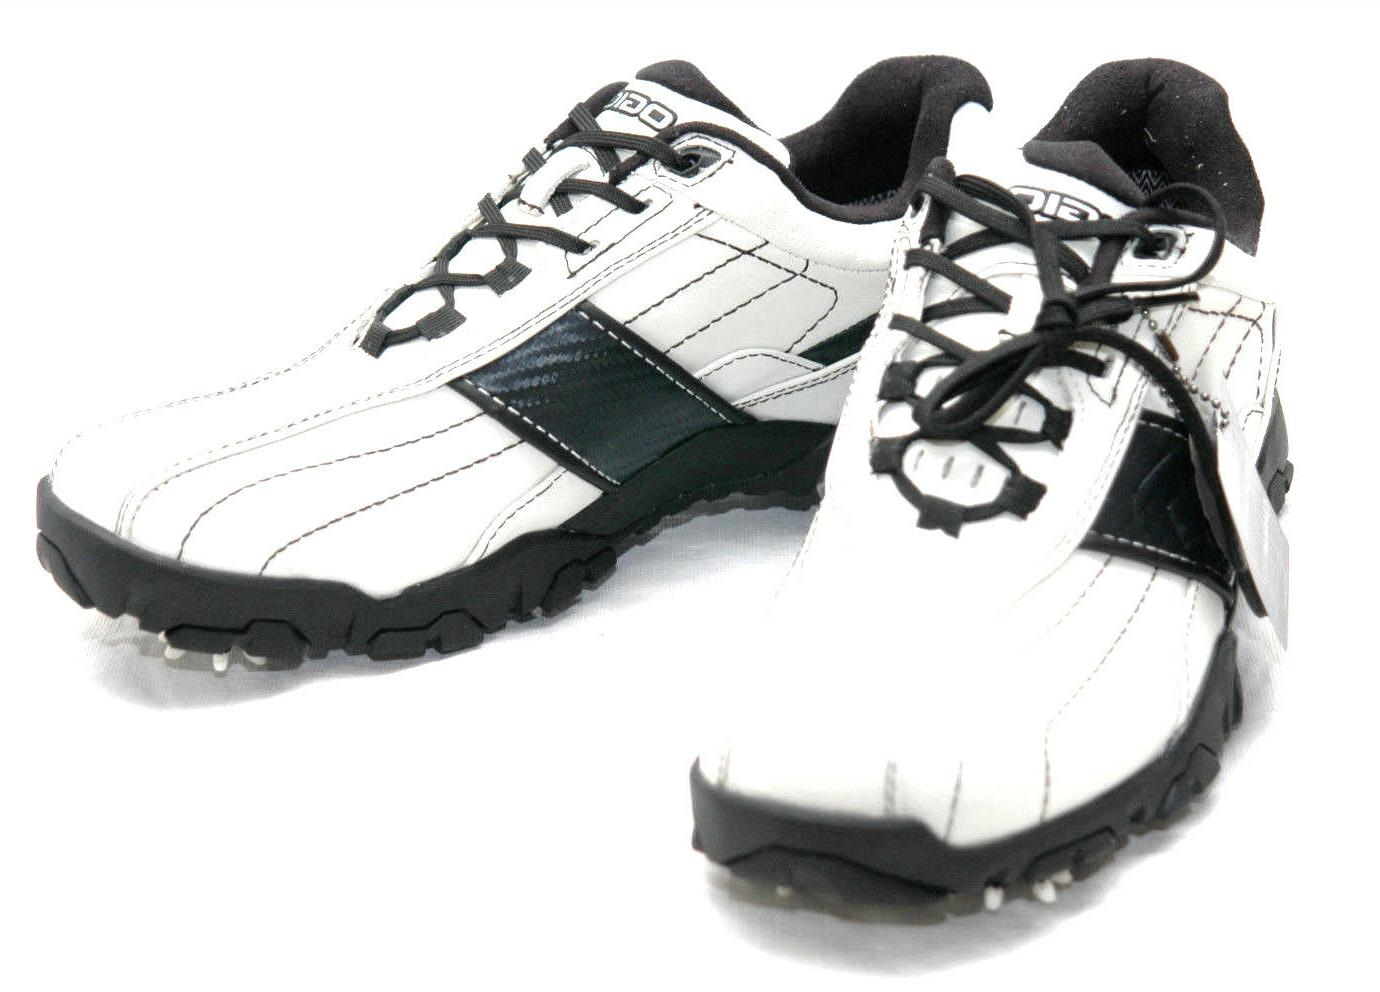 New Ogio City Spiked Golf Shoes Mens Size- 8 Medium